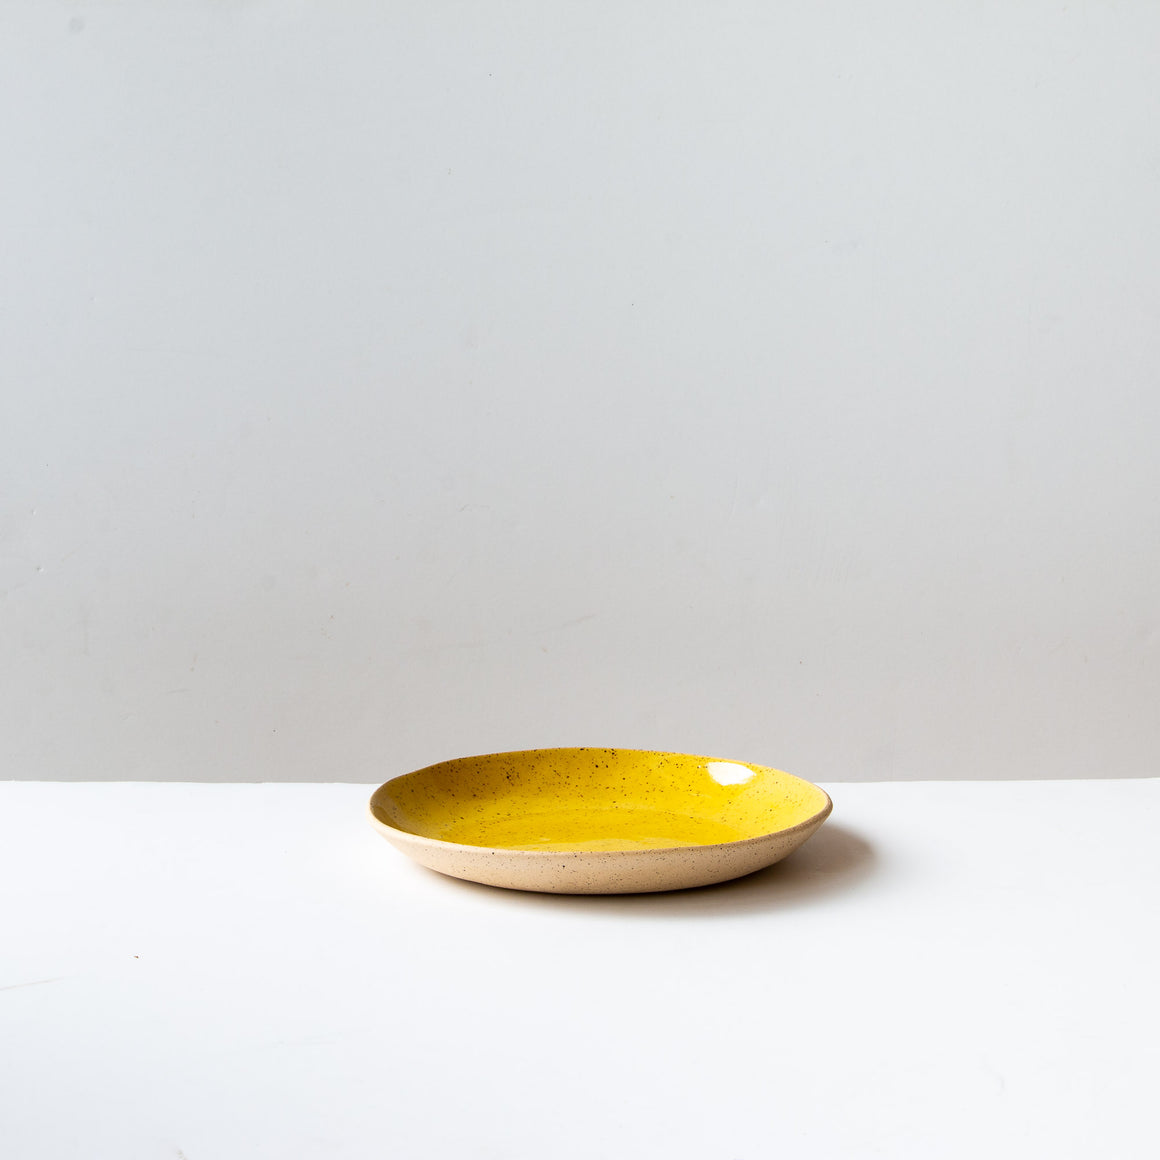 Off-white Handmade Freckled Salad Plate in Stoneware - Sold by Chic & Basta